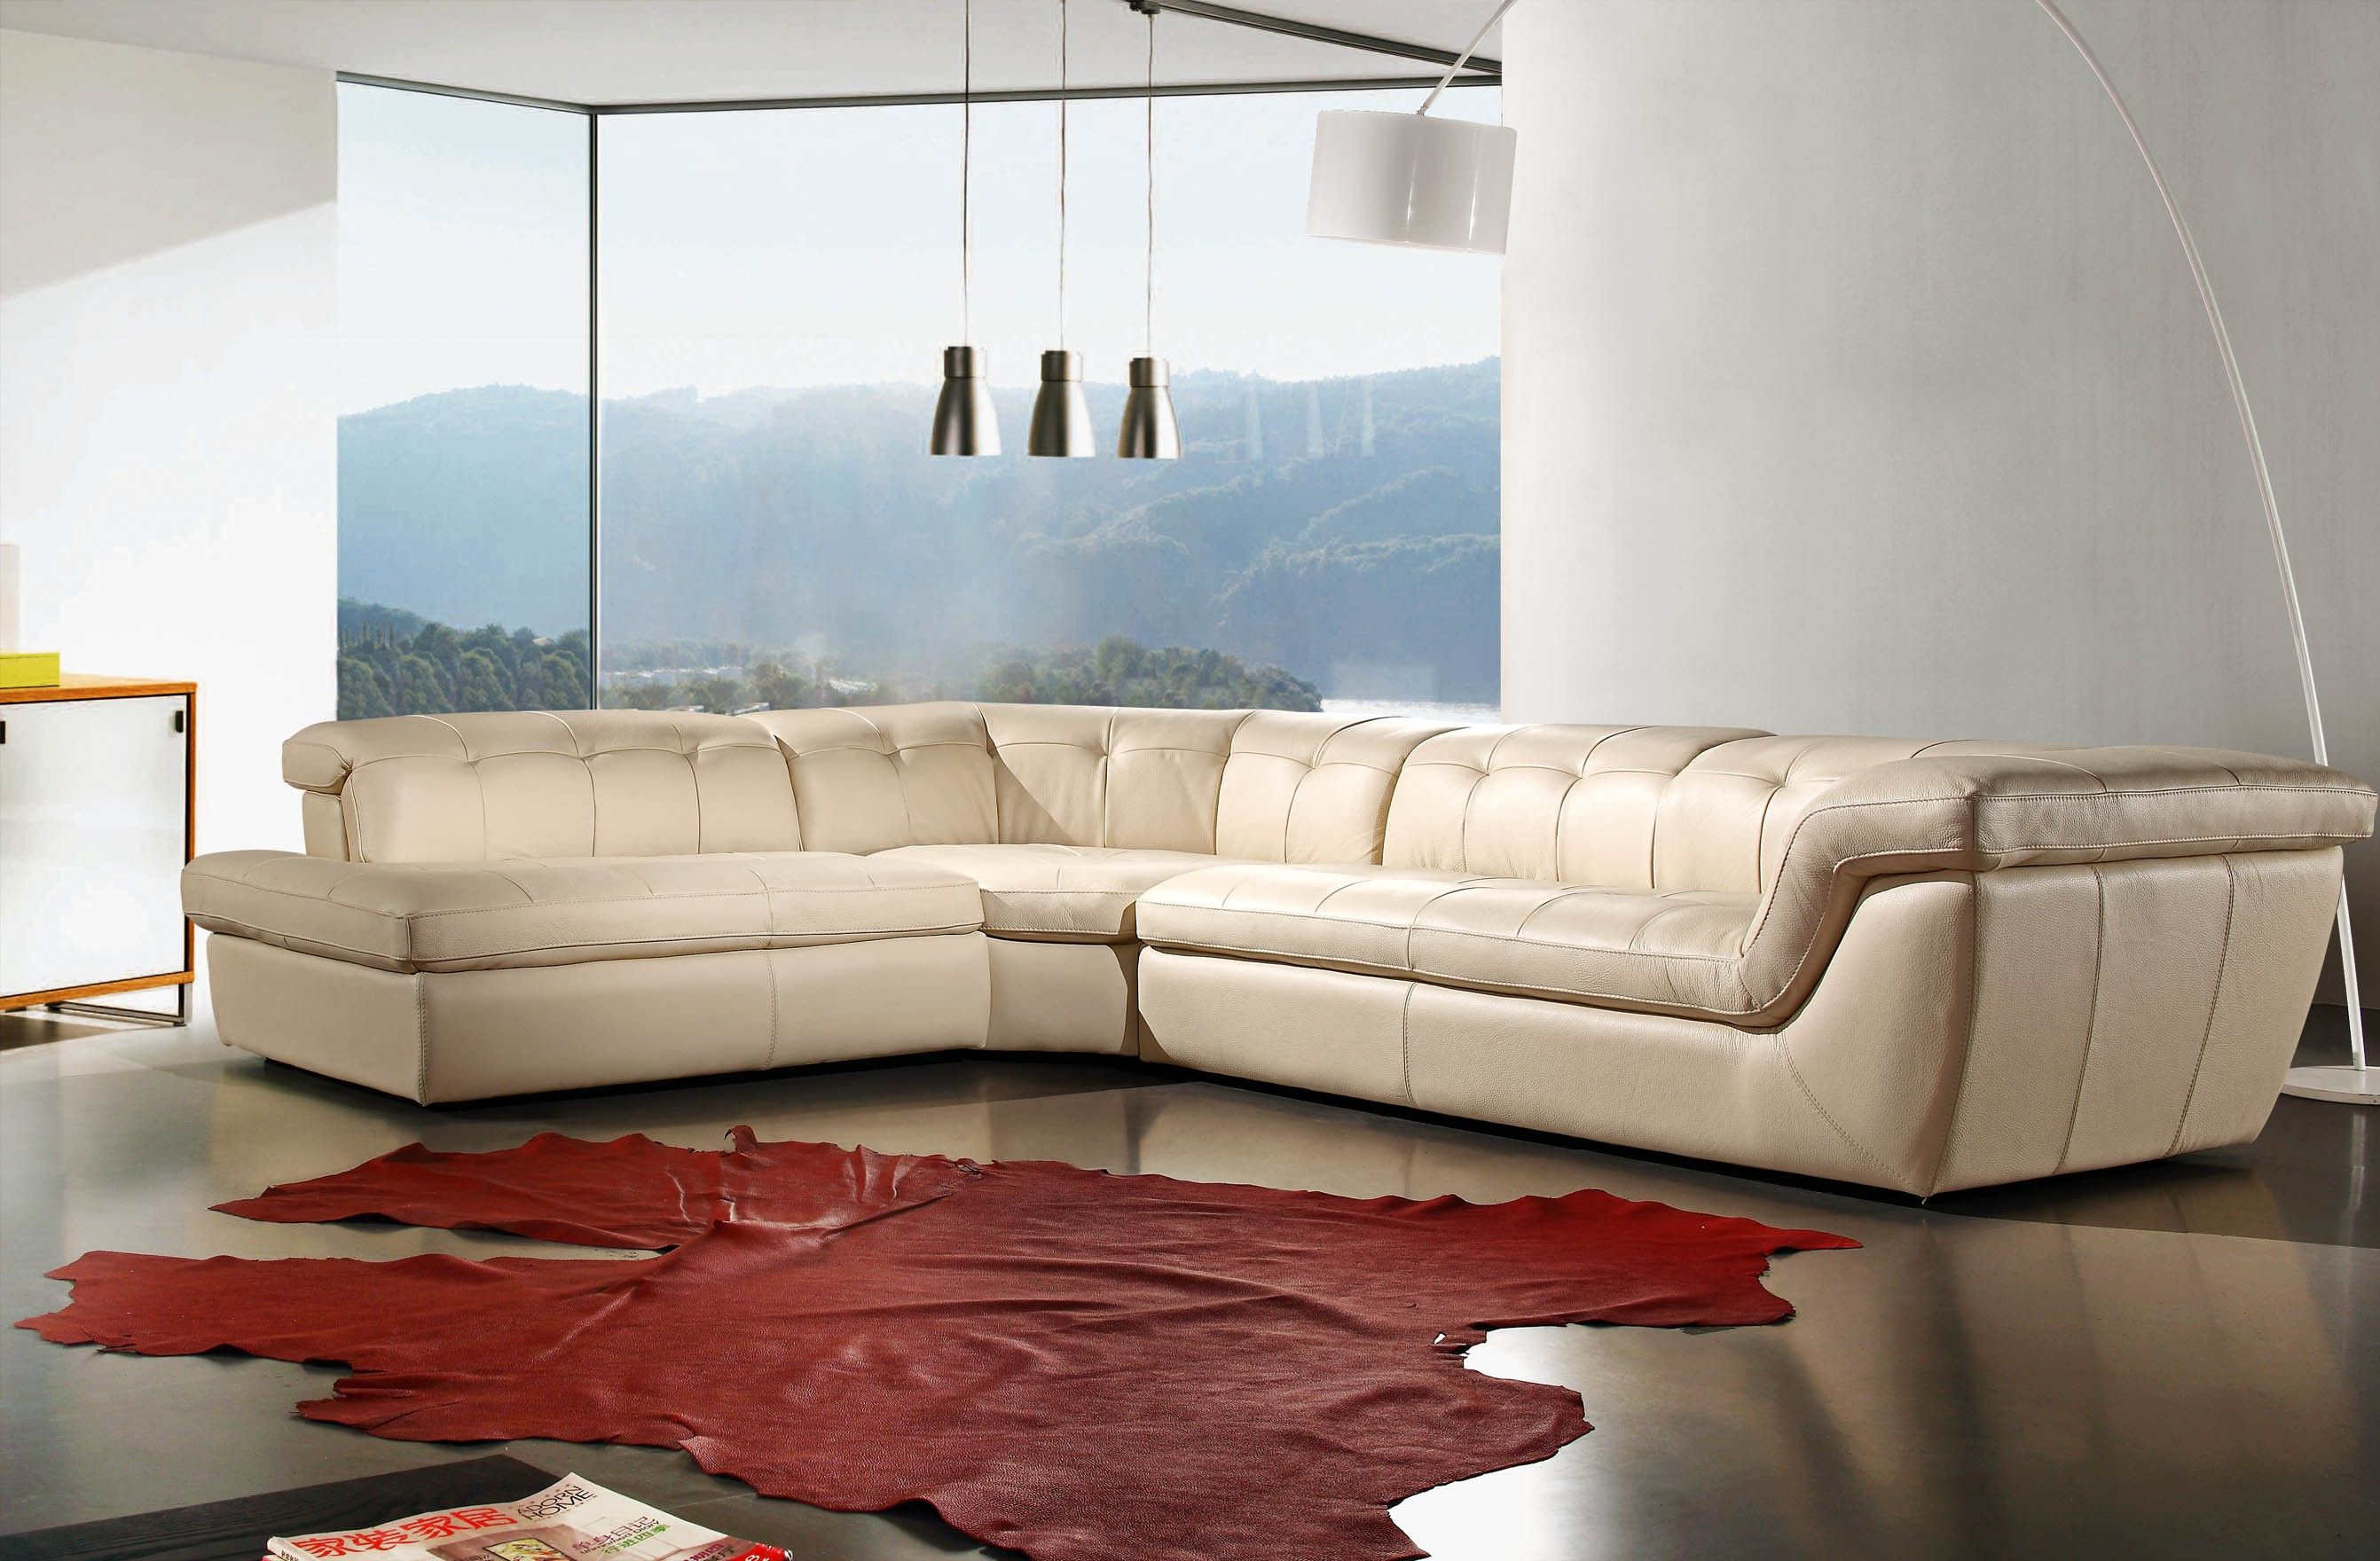 Living Room Design With Sectional Sofa American Contemporary Sofa 10 Тыс Изображений Найдено В Яндекс